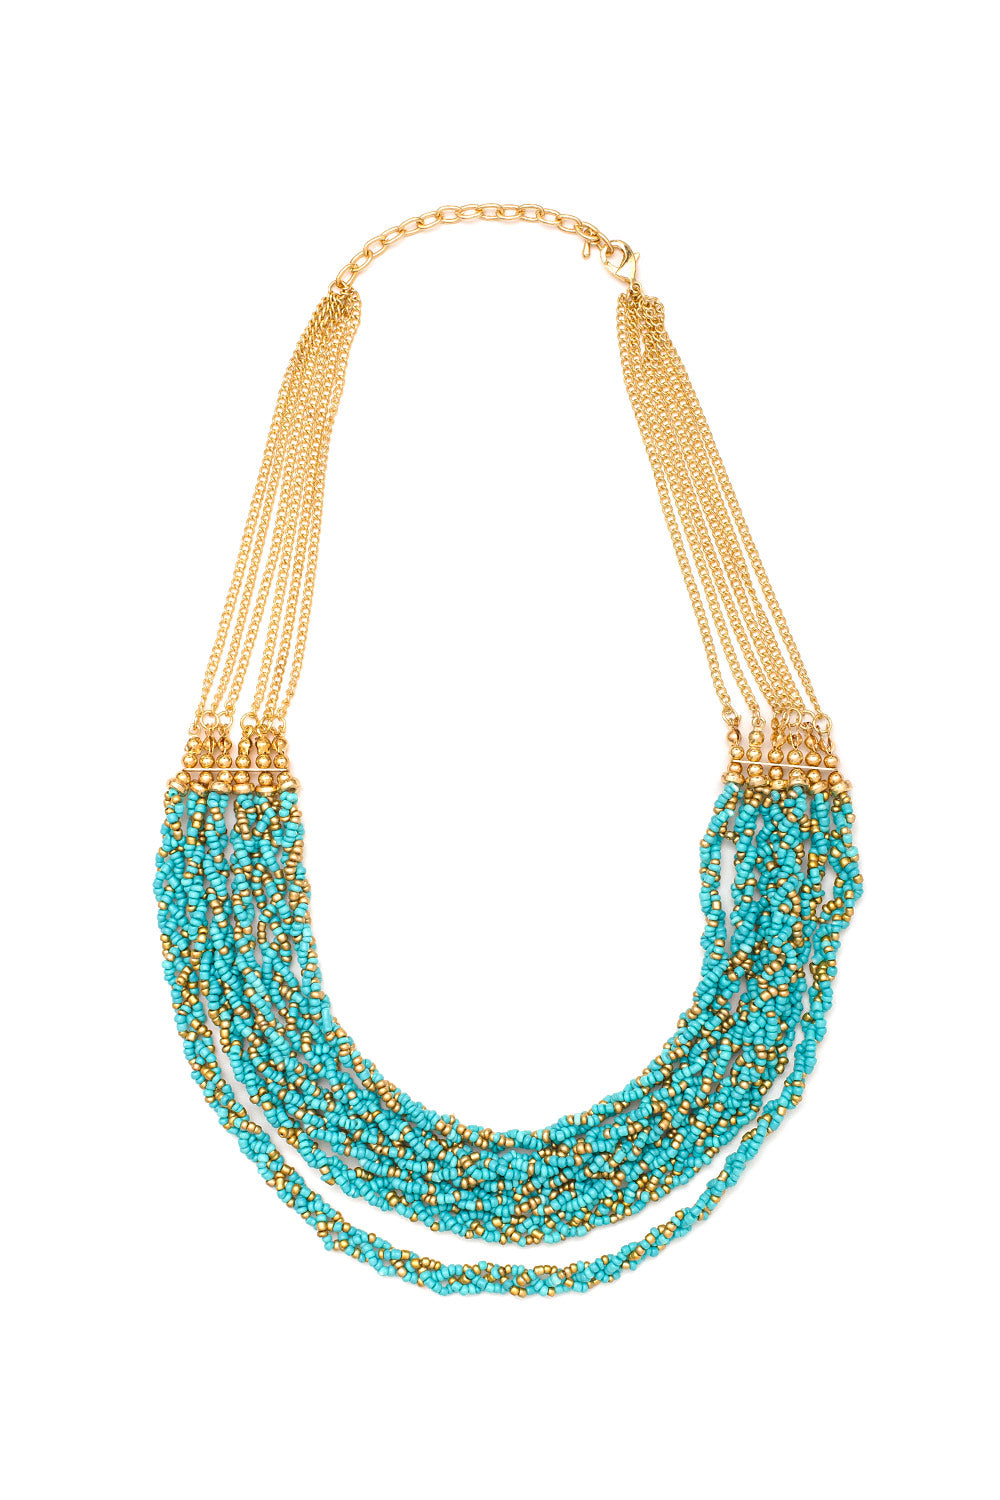 Type 3 Twisted Turquoise Necklace